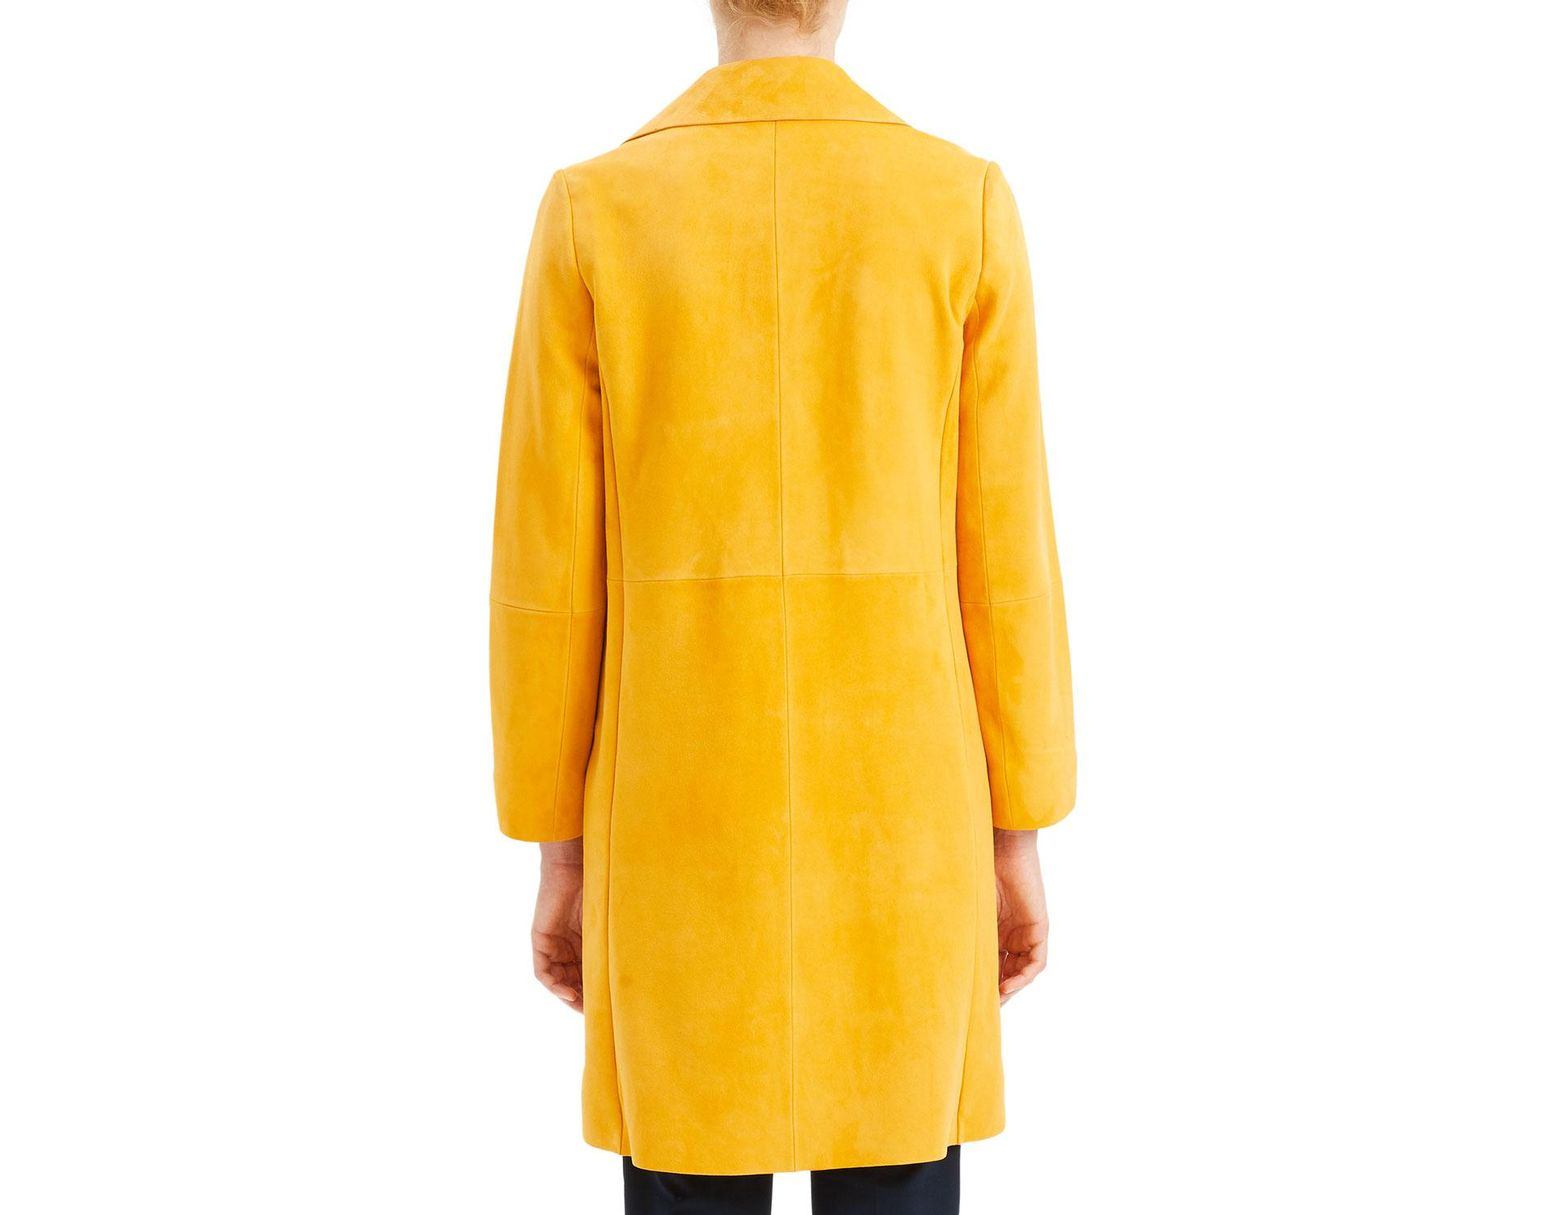 b802eac6886 Theory Piazza Suede Button-front Long Coat in Yellow - Save 85% - Lyst